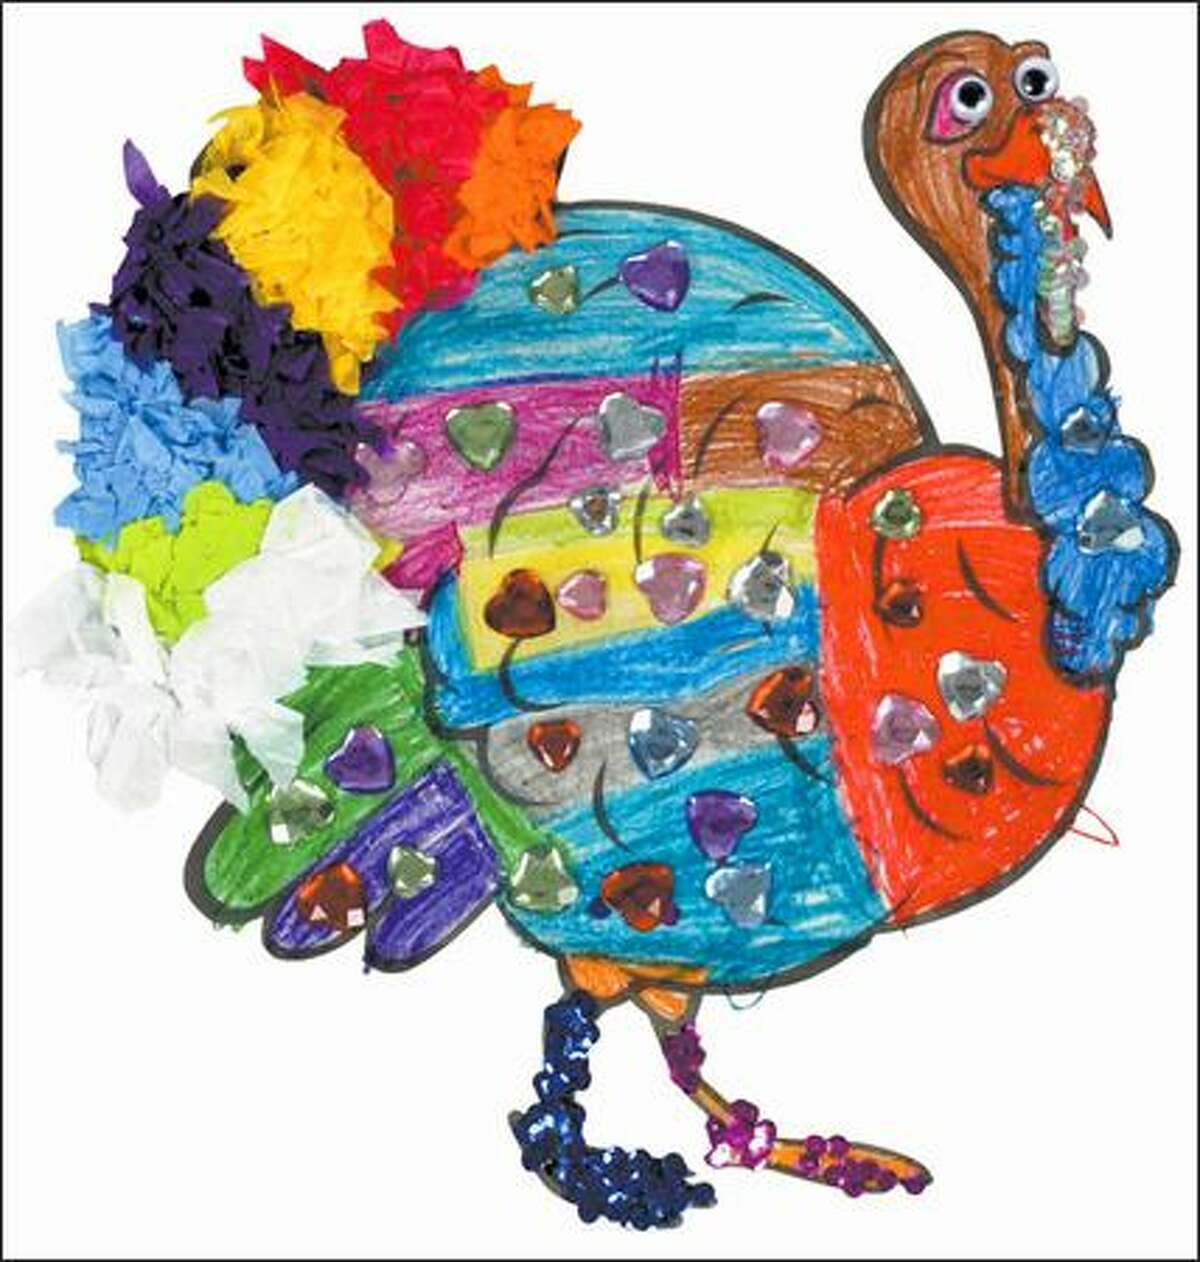 Category: Ages 5 and under. Winner: Ellen Norton of Edmonds. Judges' comments: This sparkly, colorful turkey immediately caught our eyes. The crayon coloring and creativity are exceptional for this age group.